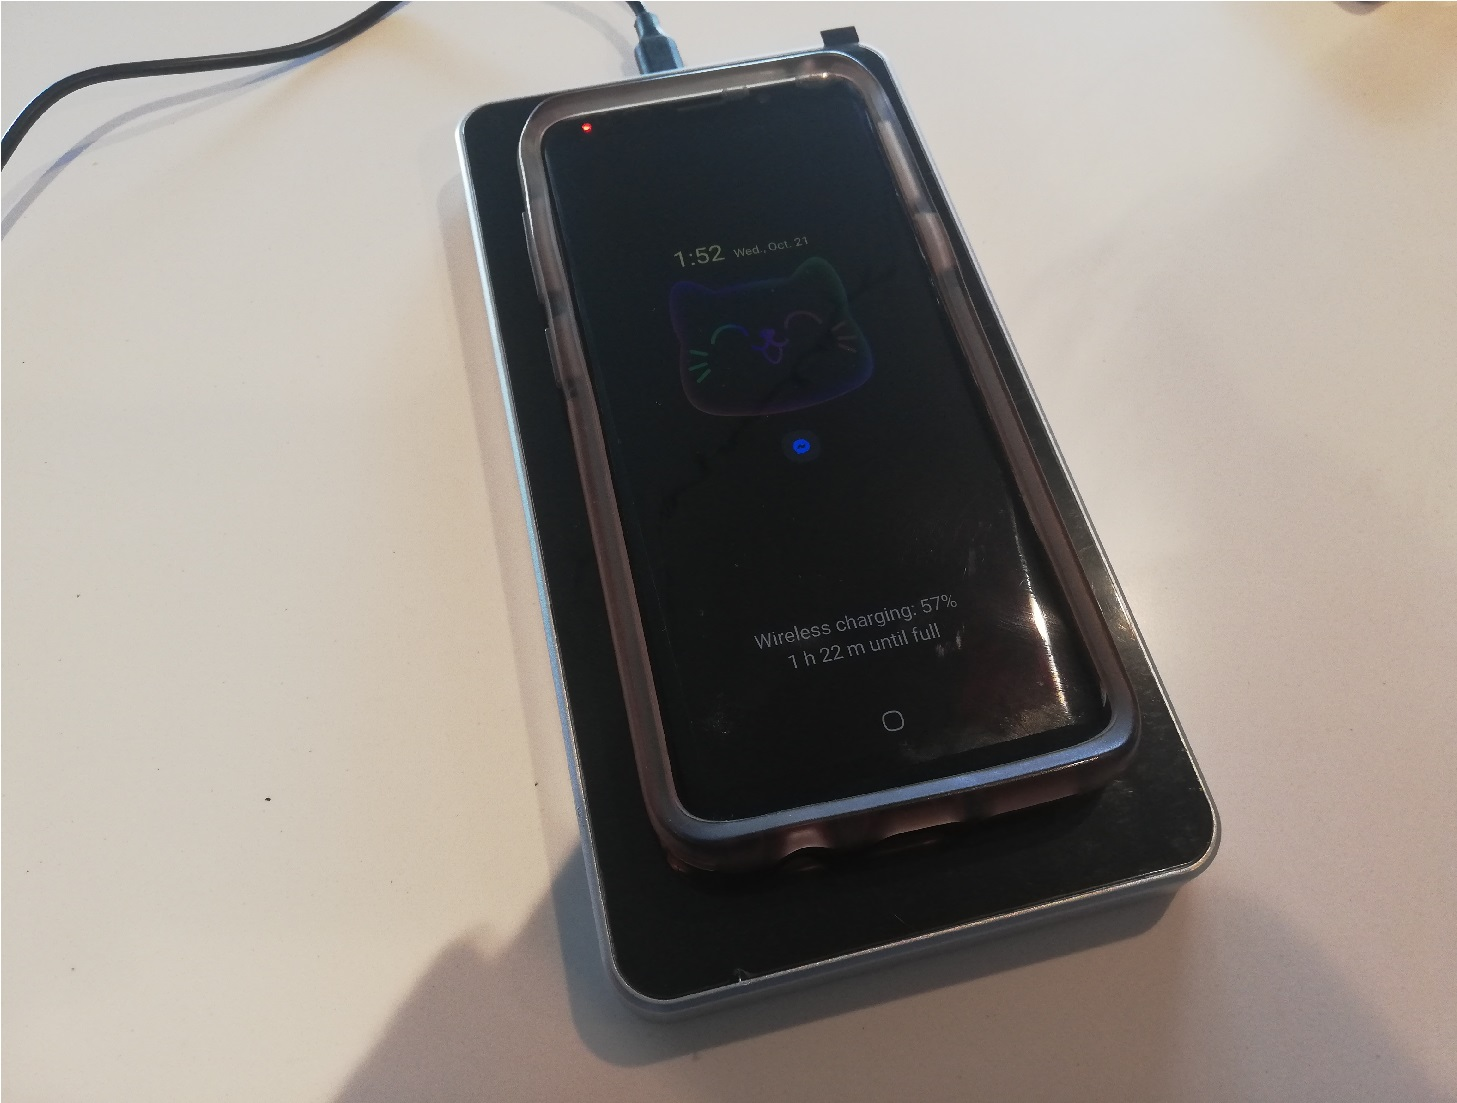 image of a phone charging on the wireless charging pad surface